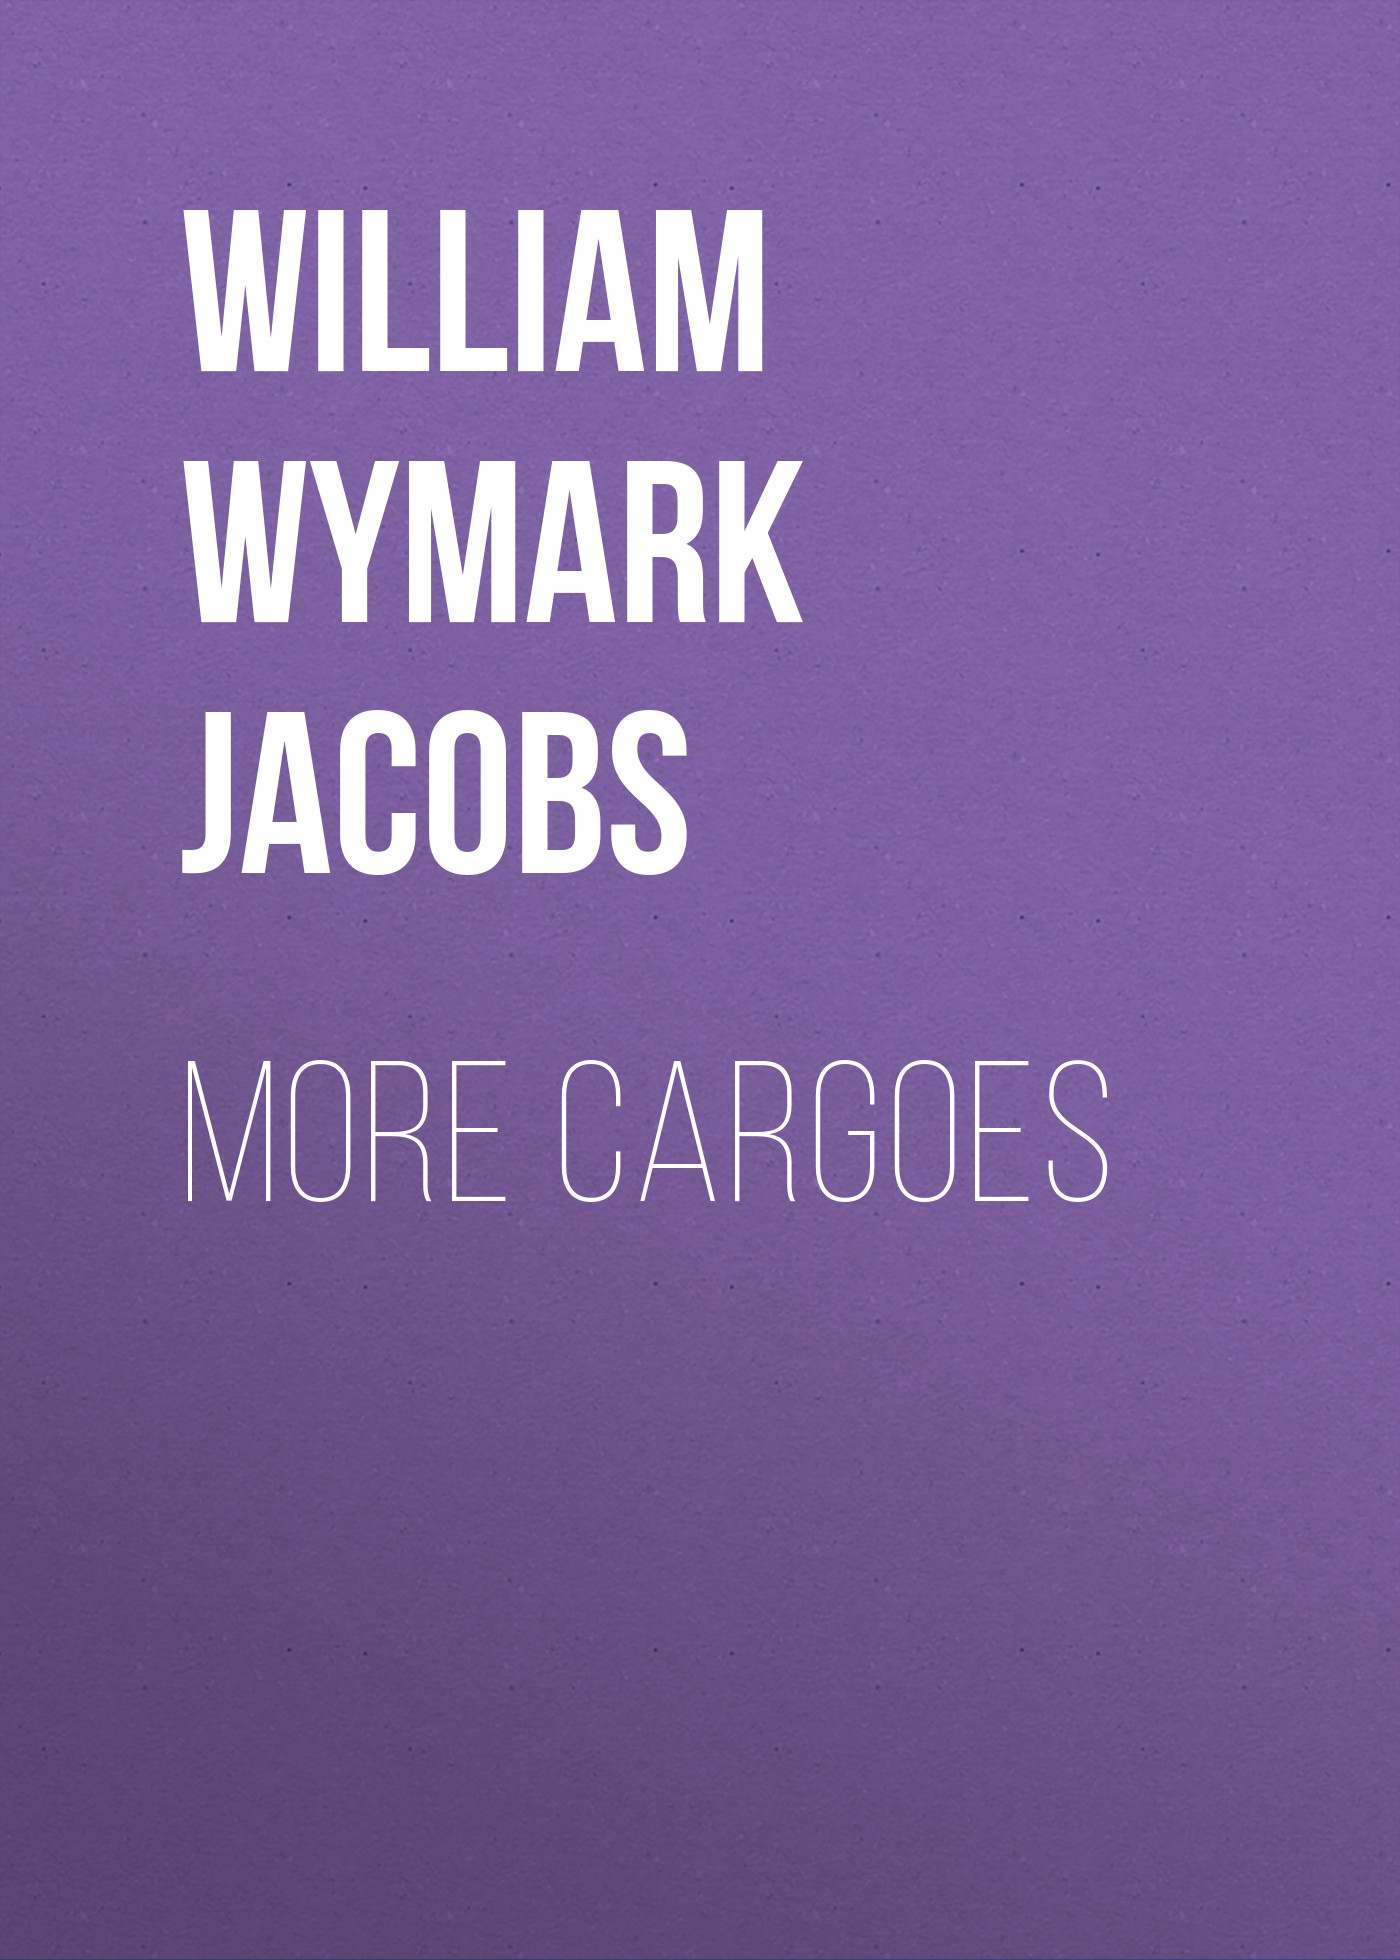 лучшая цена William Wymark Jacobs More Cargoes